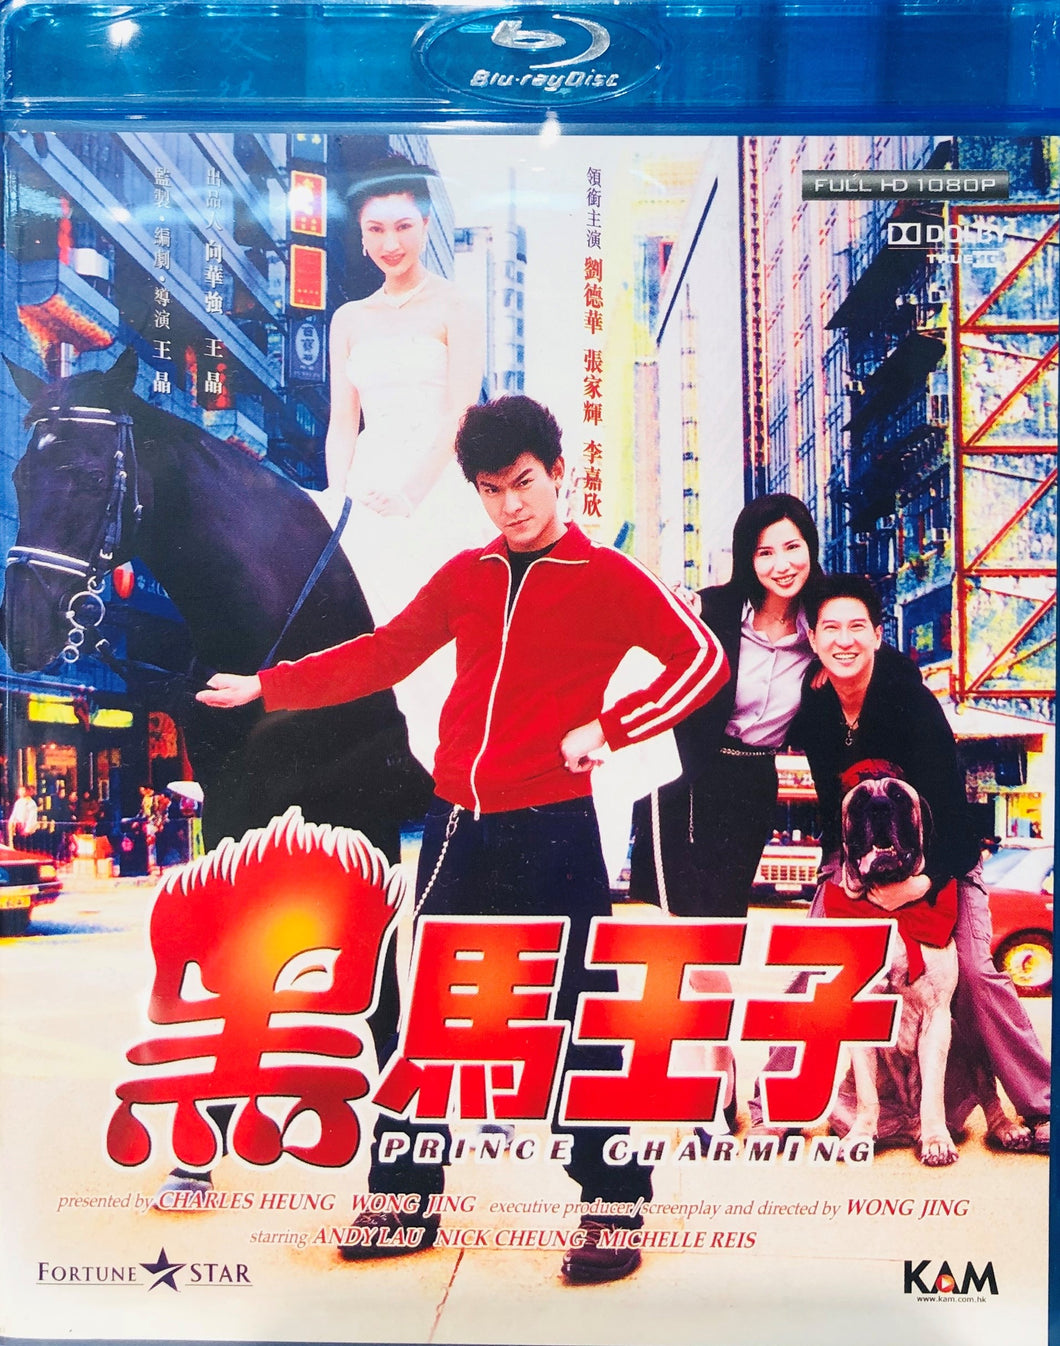 Prince Charming 黑馬王子1999 (Hong Kong Movie) BLU-RAY with English Subtitles (Region A)